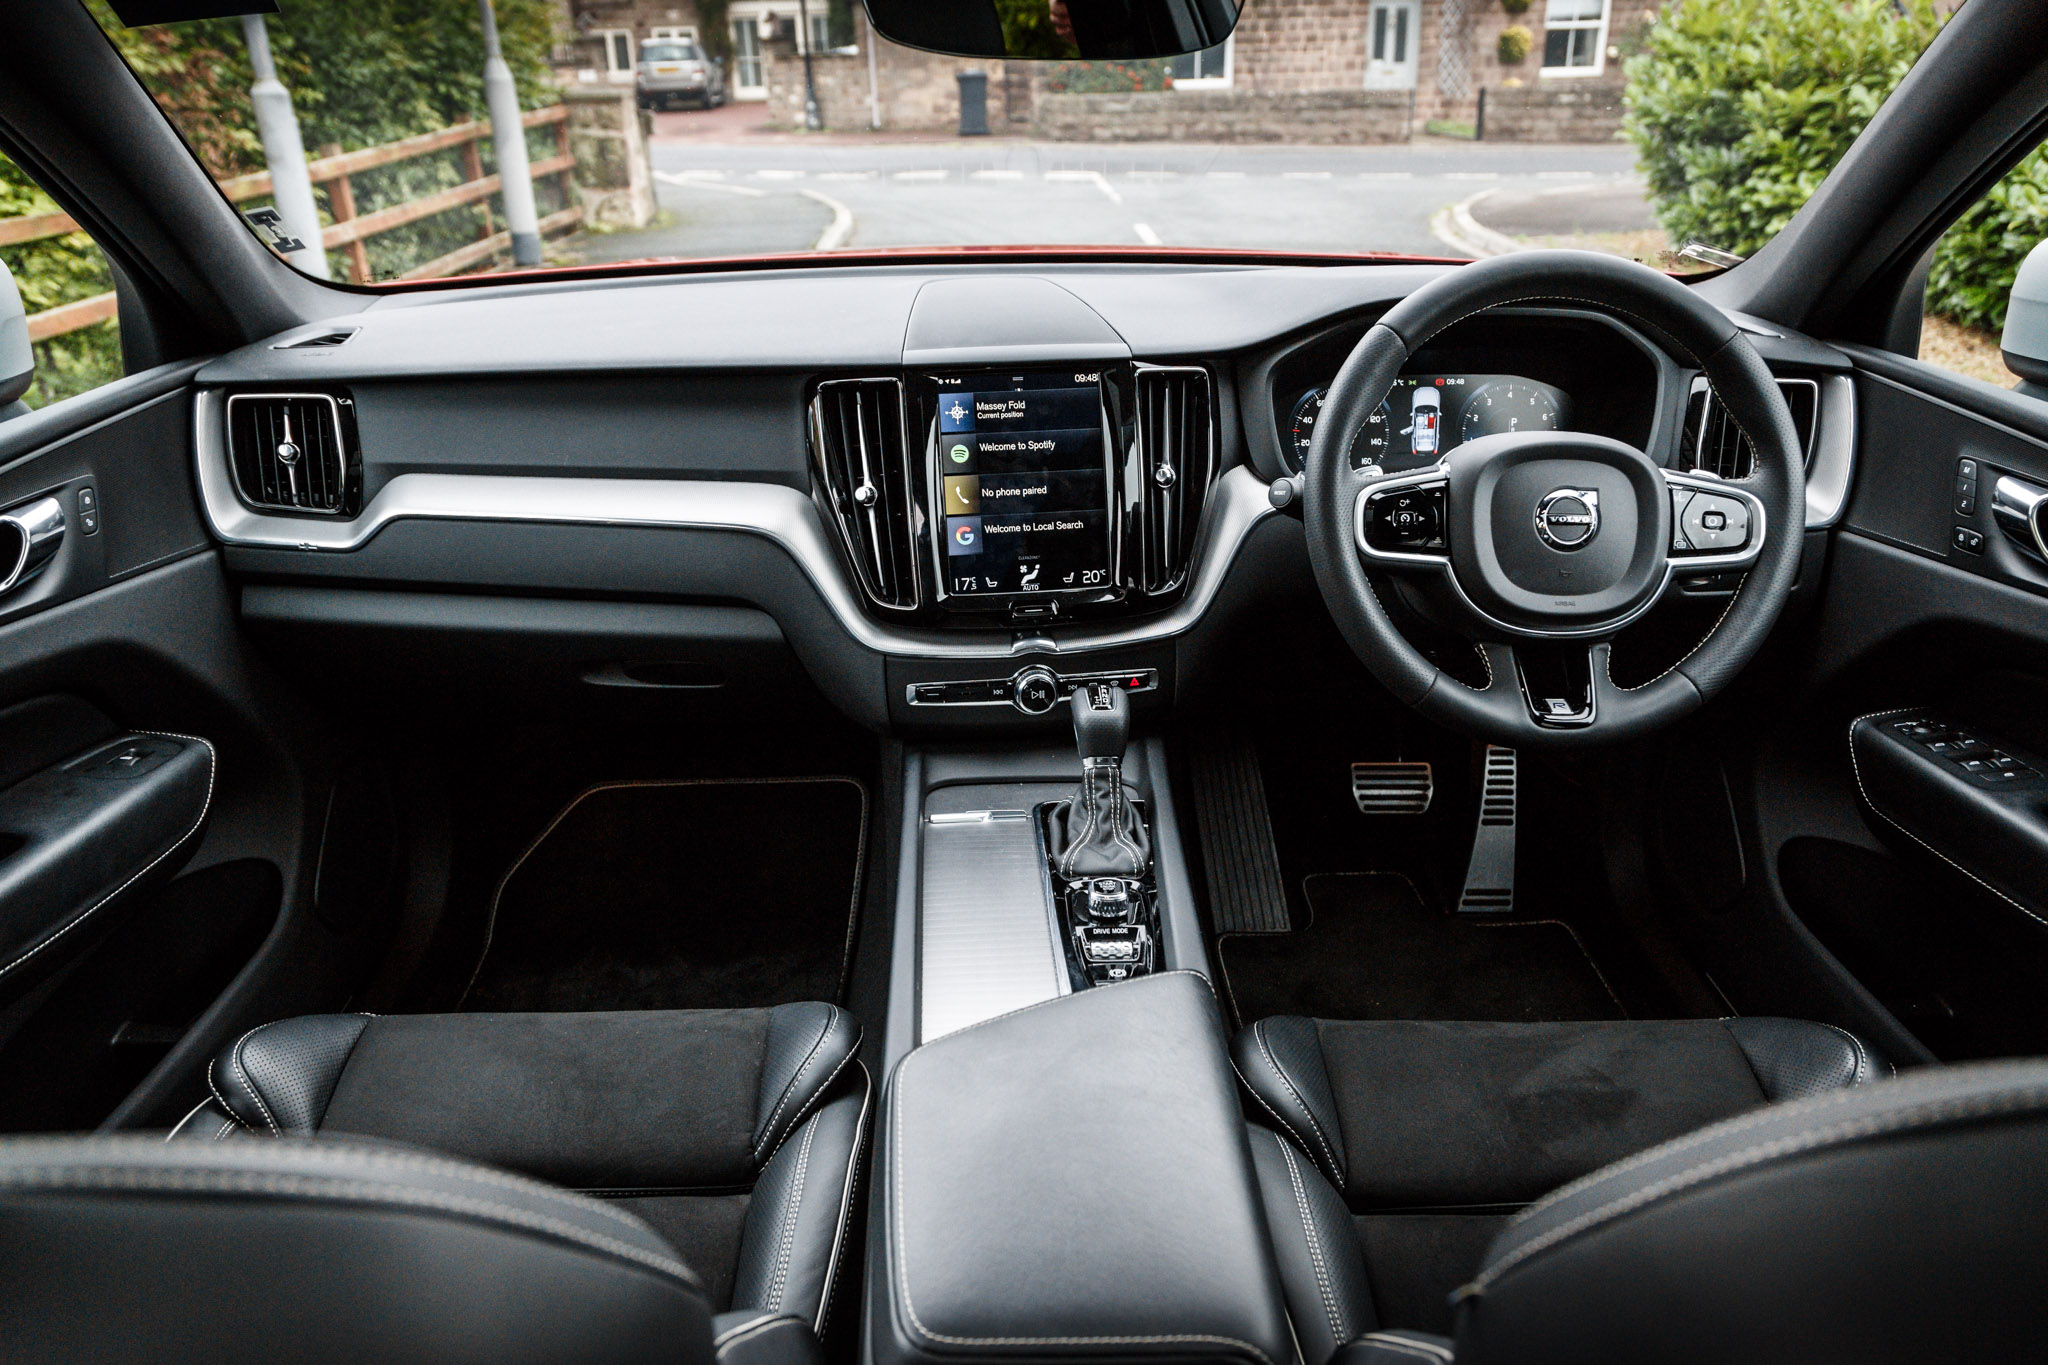 100 Volvo Xc60 Interior 2017 Iab Reader Spots The